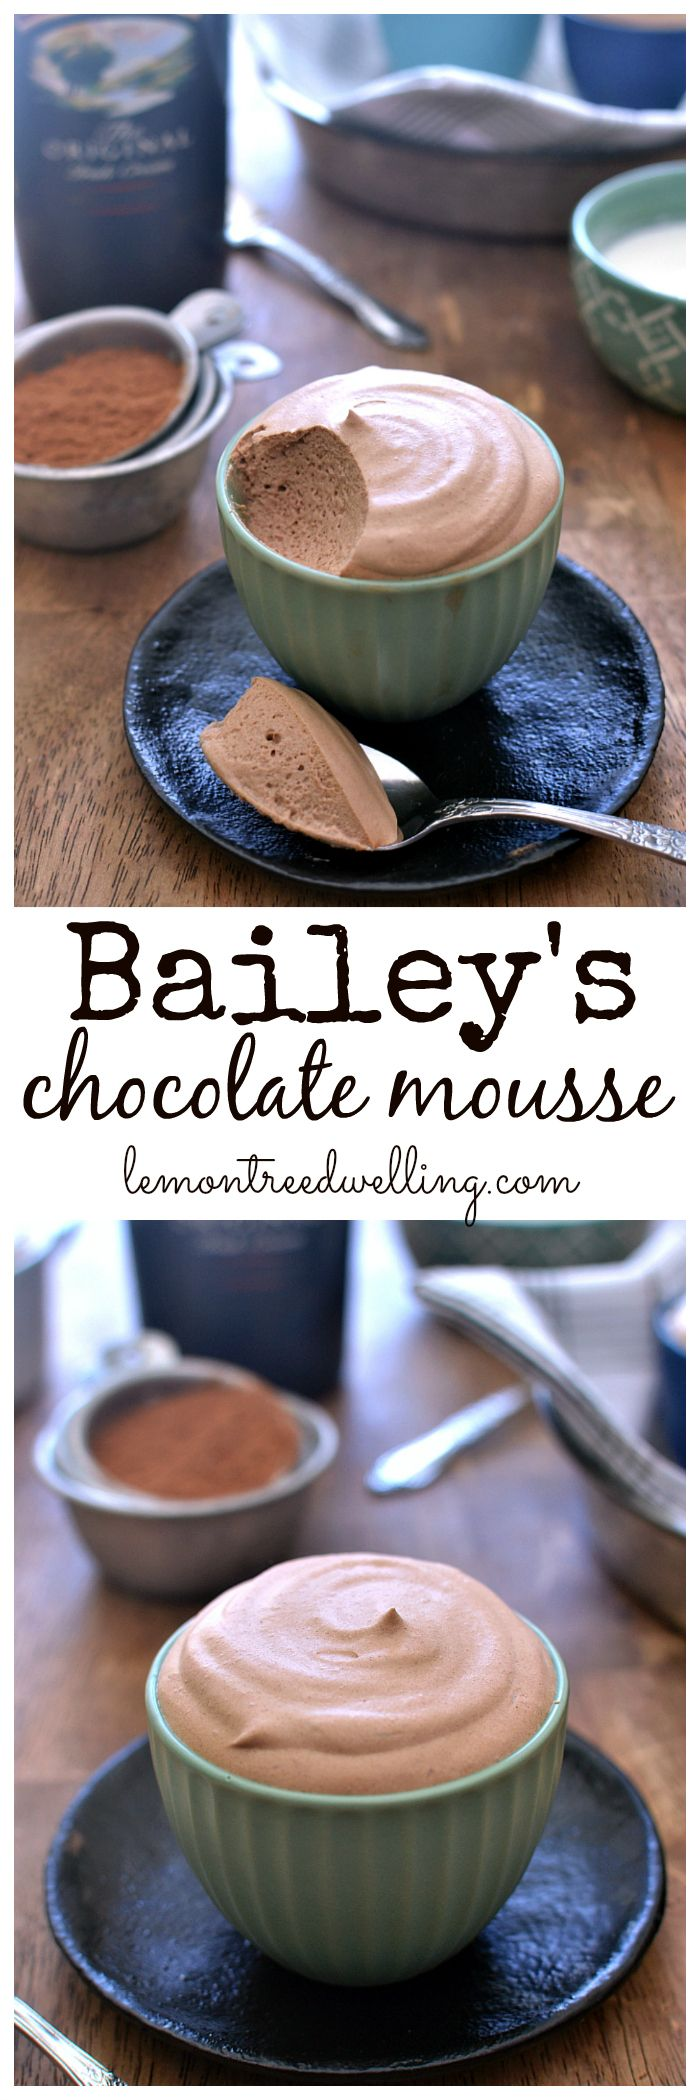 Bailey's Chocolate Mousse - this looks AMAZING for St. Patrick's Day!